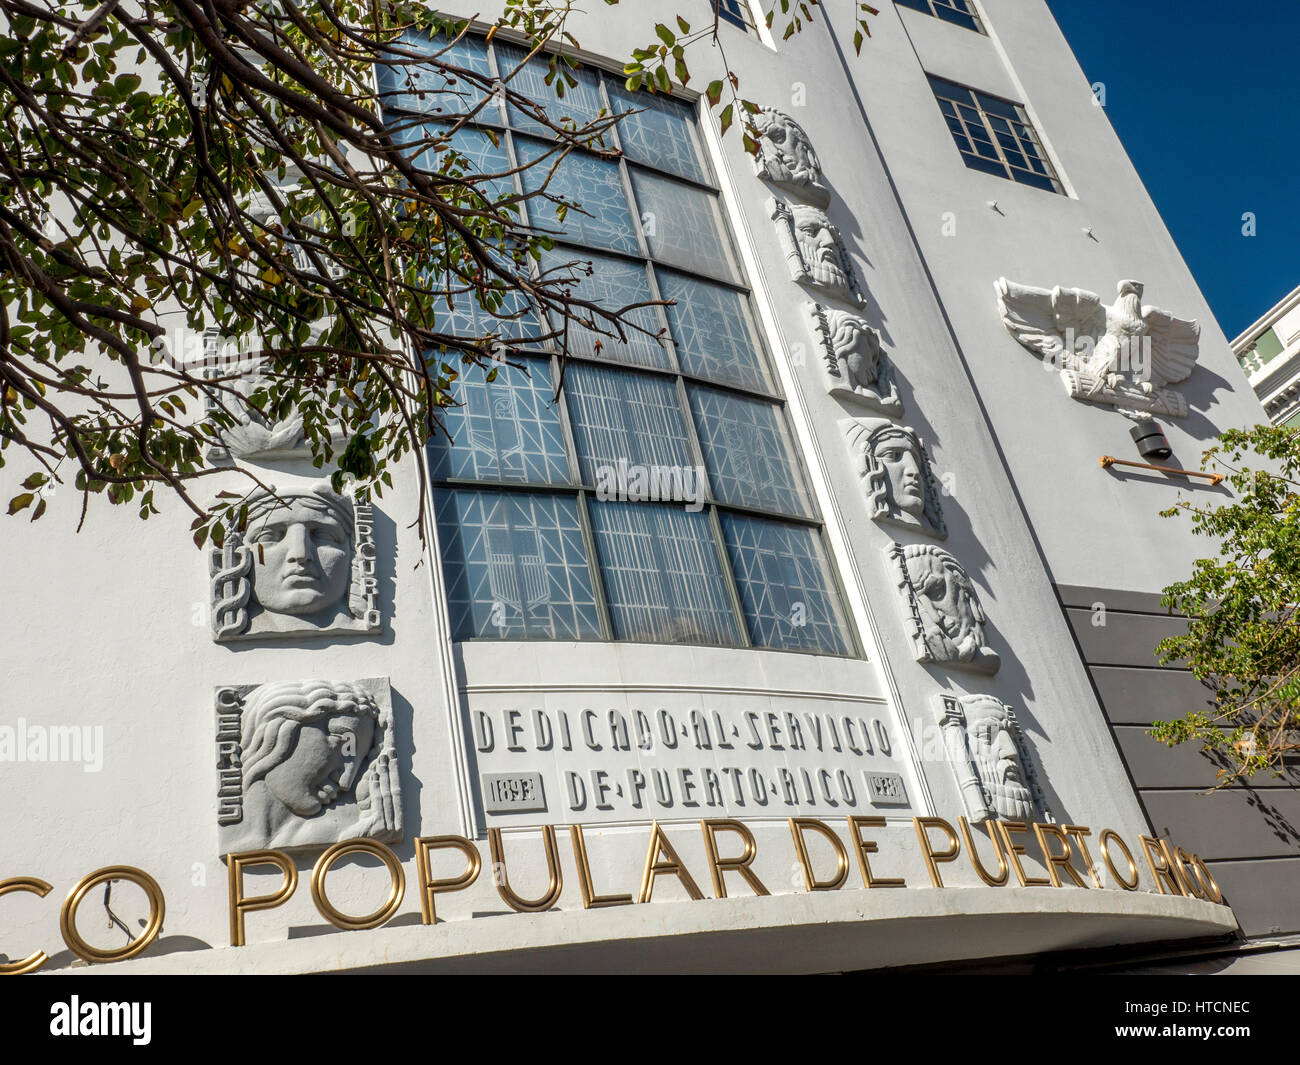 Close Up Detail Of The Art Deco Exterior Of The Banco Popular De Puerto Rico In Old San Juan Puerto Rico - Stock Image